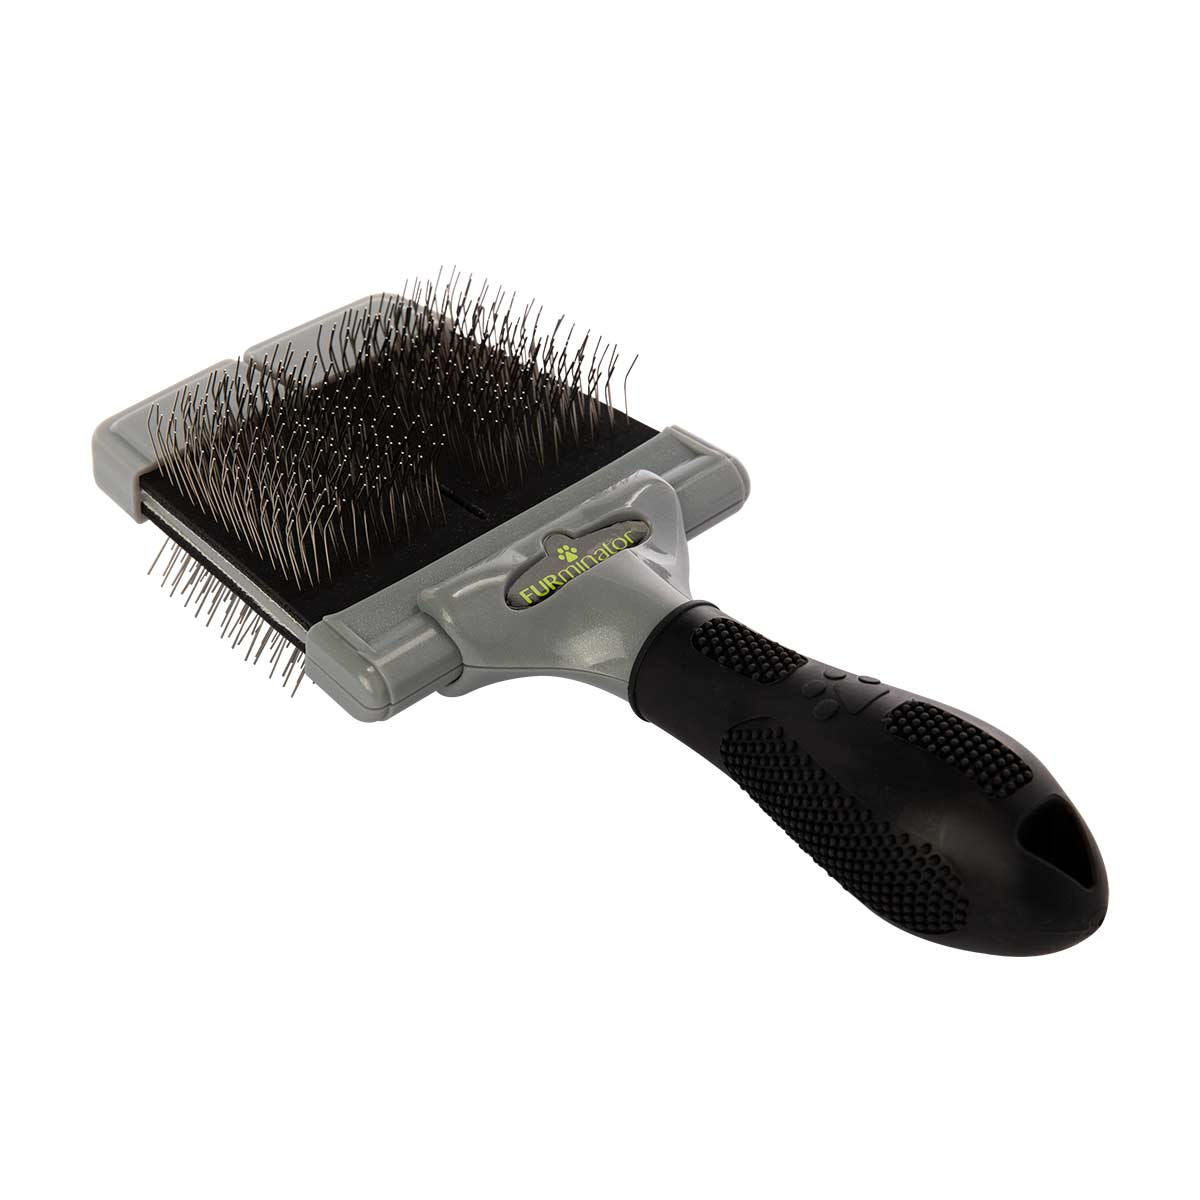 Furminator Large Firm Slicker - Twin head for Detangling